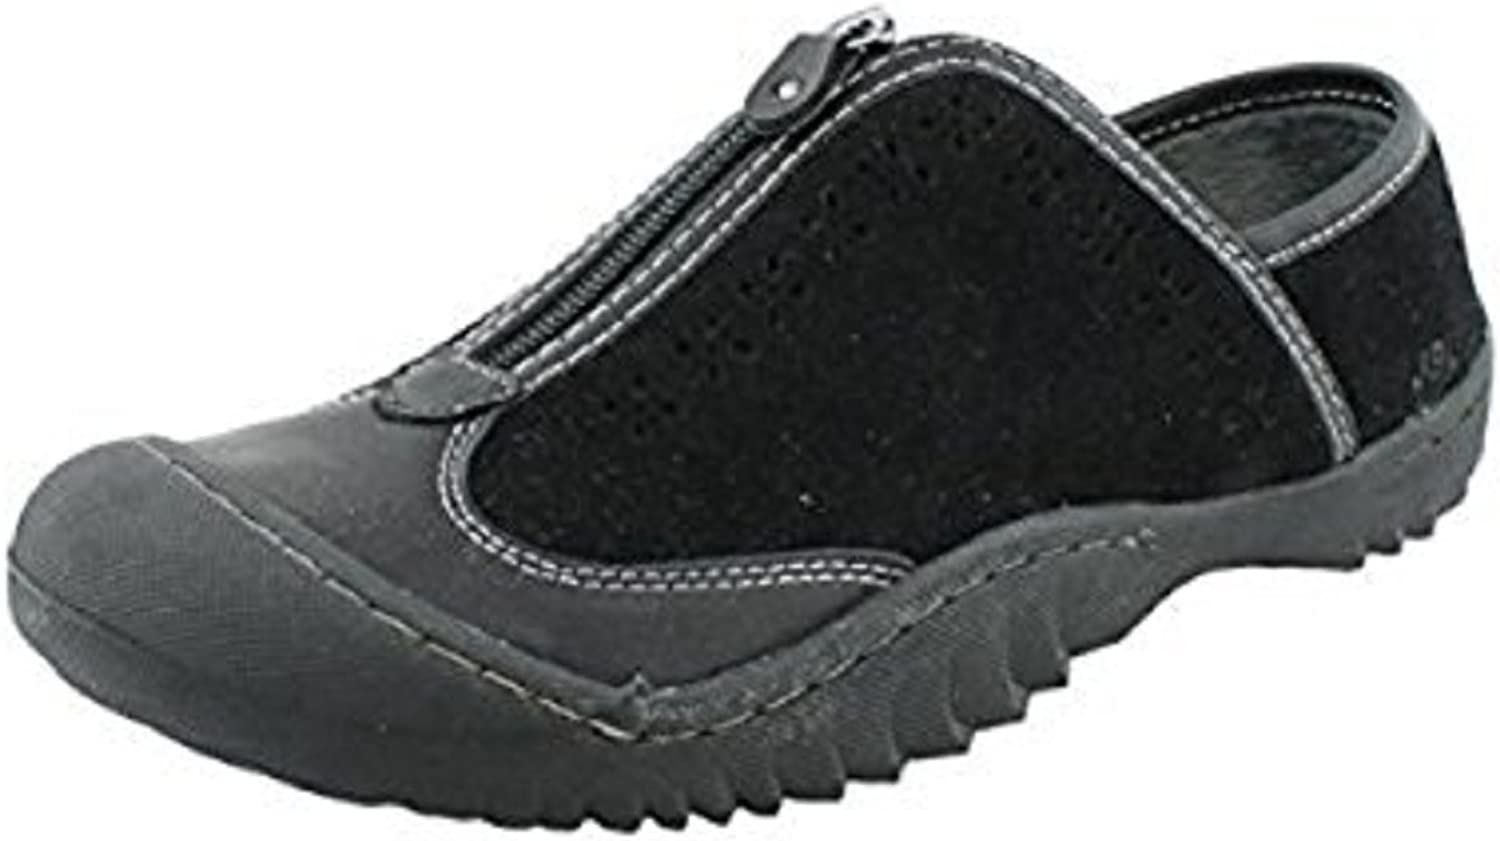 Jambu JBU Quartz Women Black Clogs Size 11M